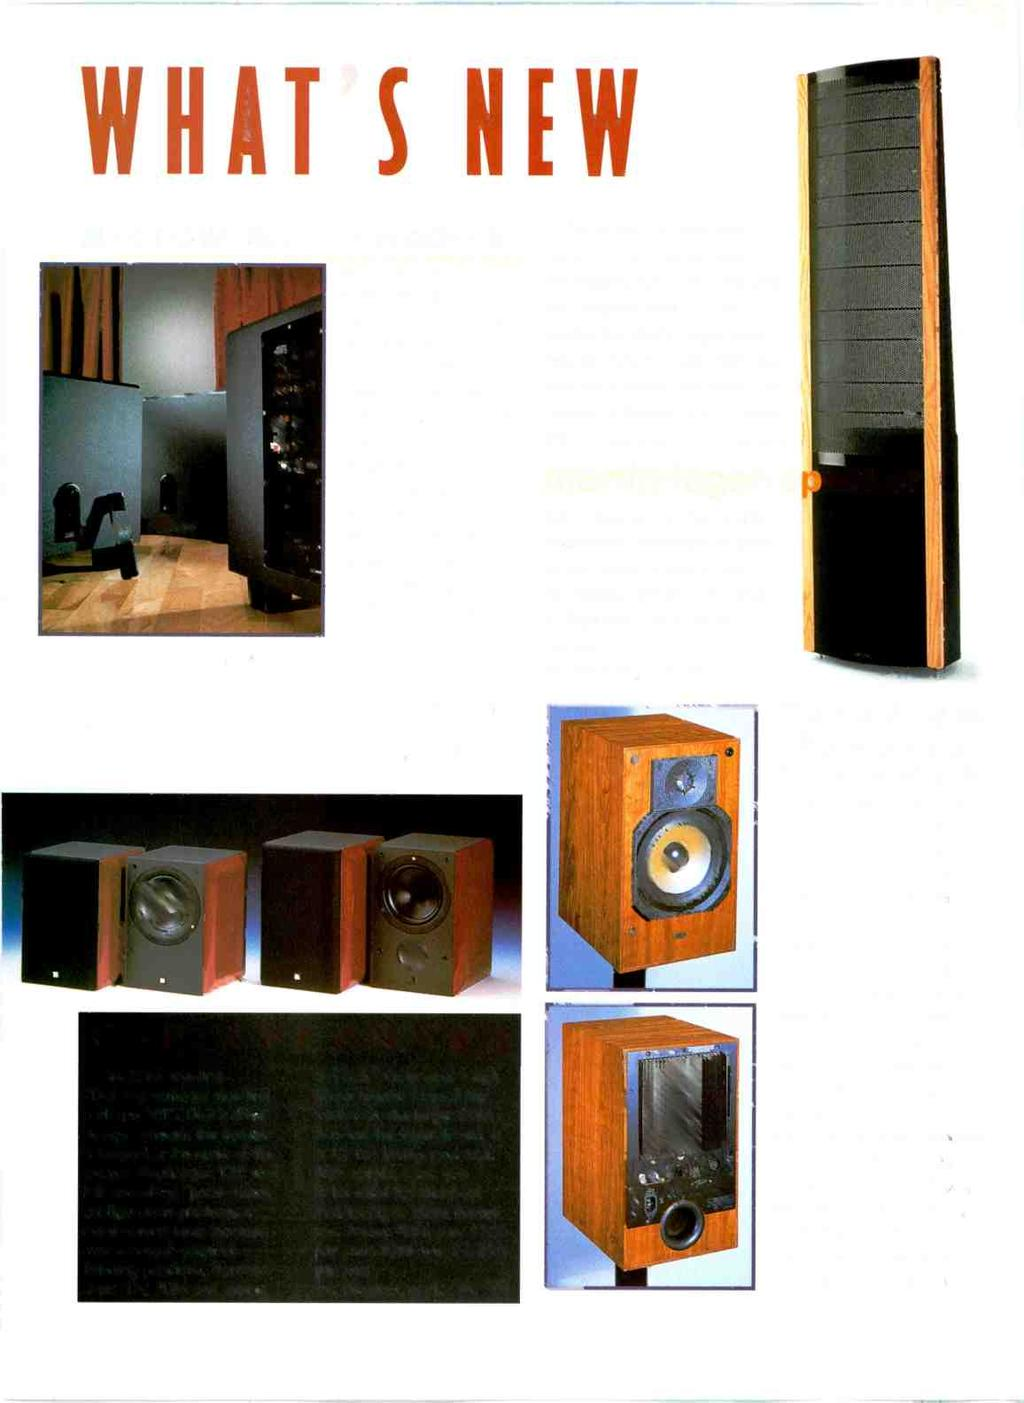 Annive Articles By Joseph Grado Bascom King Ken Kantor Tested Subwoofer Purple Storm Ps 12 W Mtx N Ats Powered Subwoofers Easy Placement Anywhere In A Room Even Next